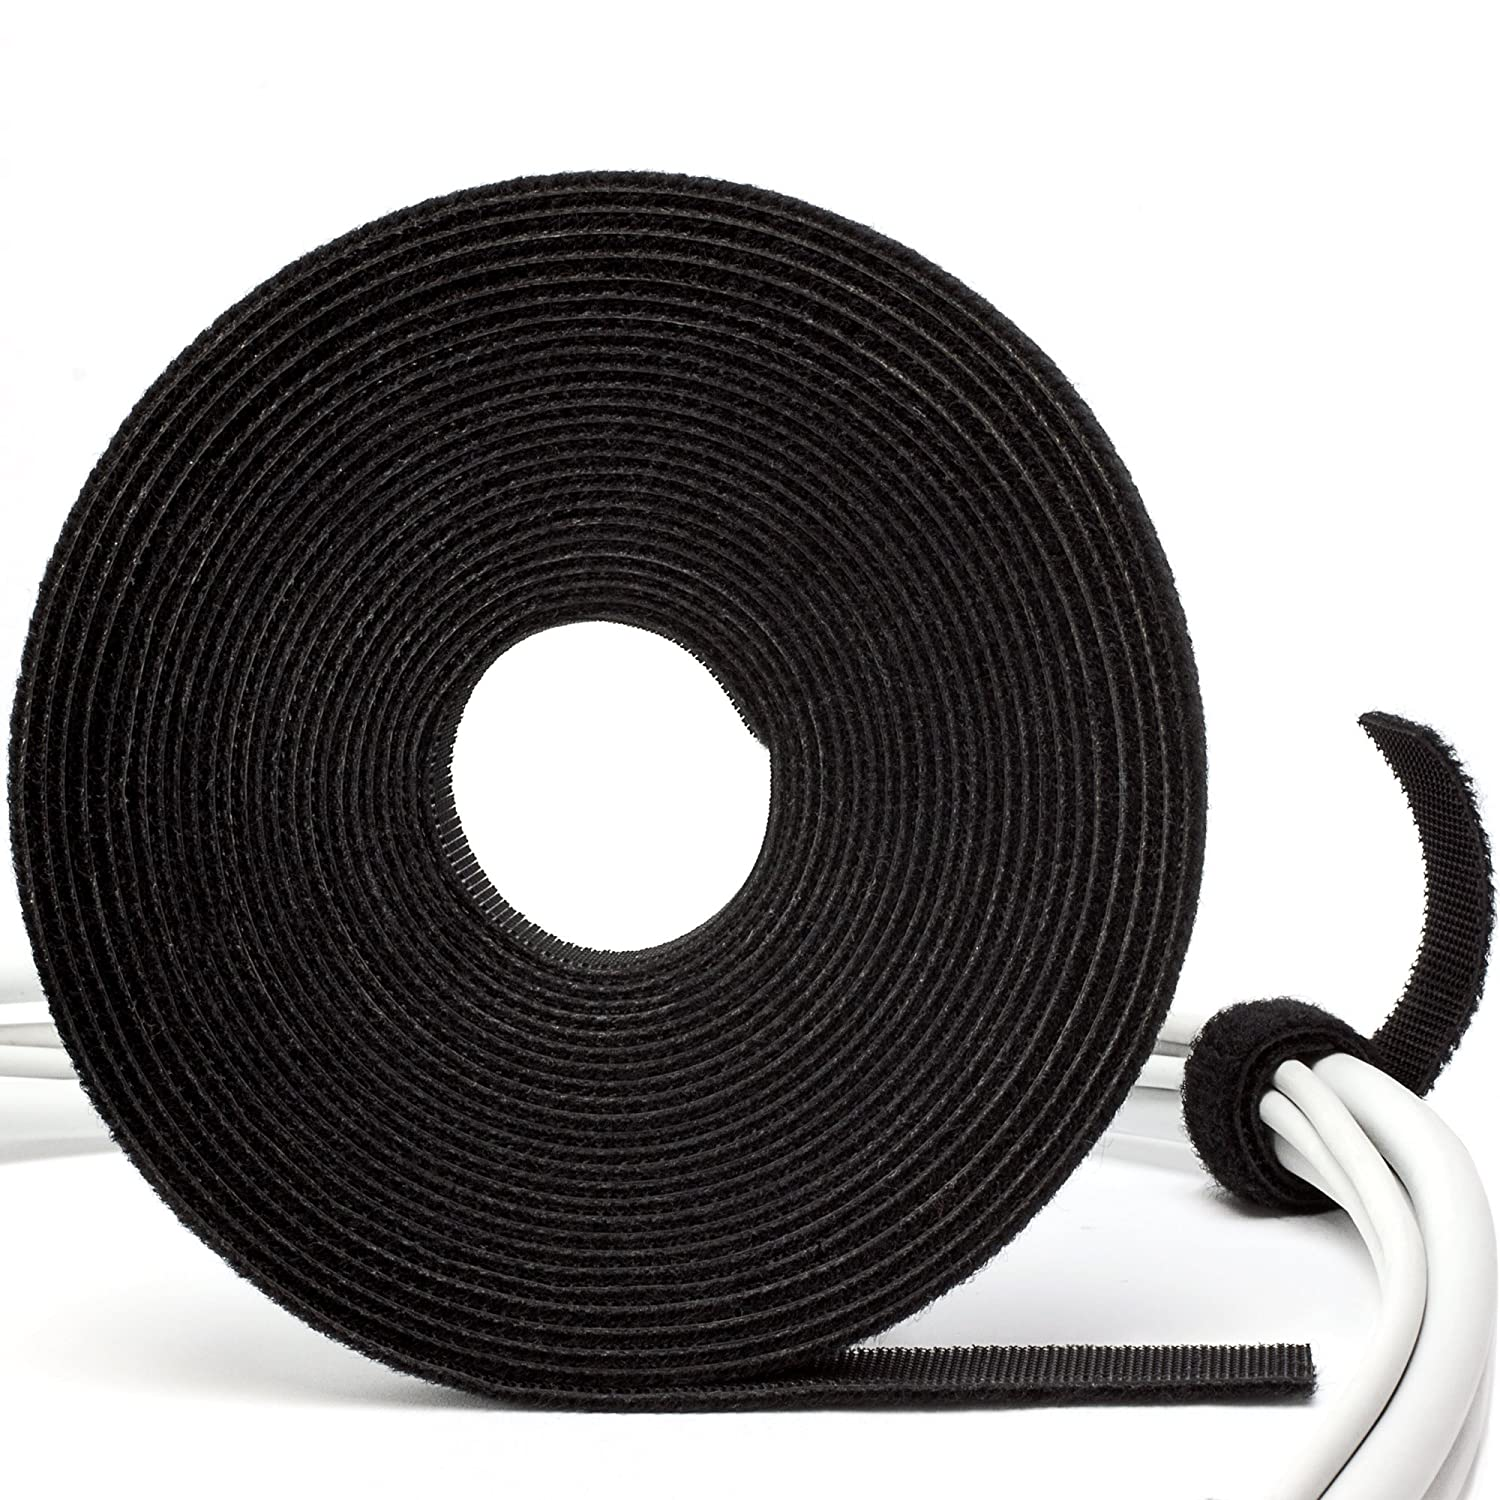 Purovi 5 Metre Cable Manager Tape Tidy Office and Home Adjustable Cables Organiser 10 mm Wide Hook and Loop Cable Ties Roll